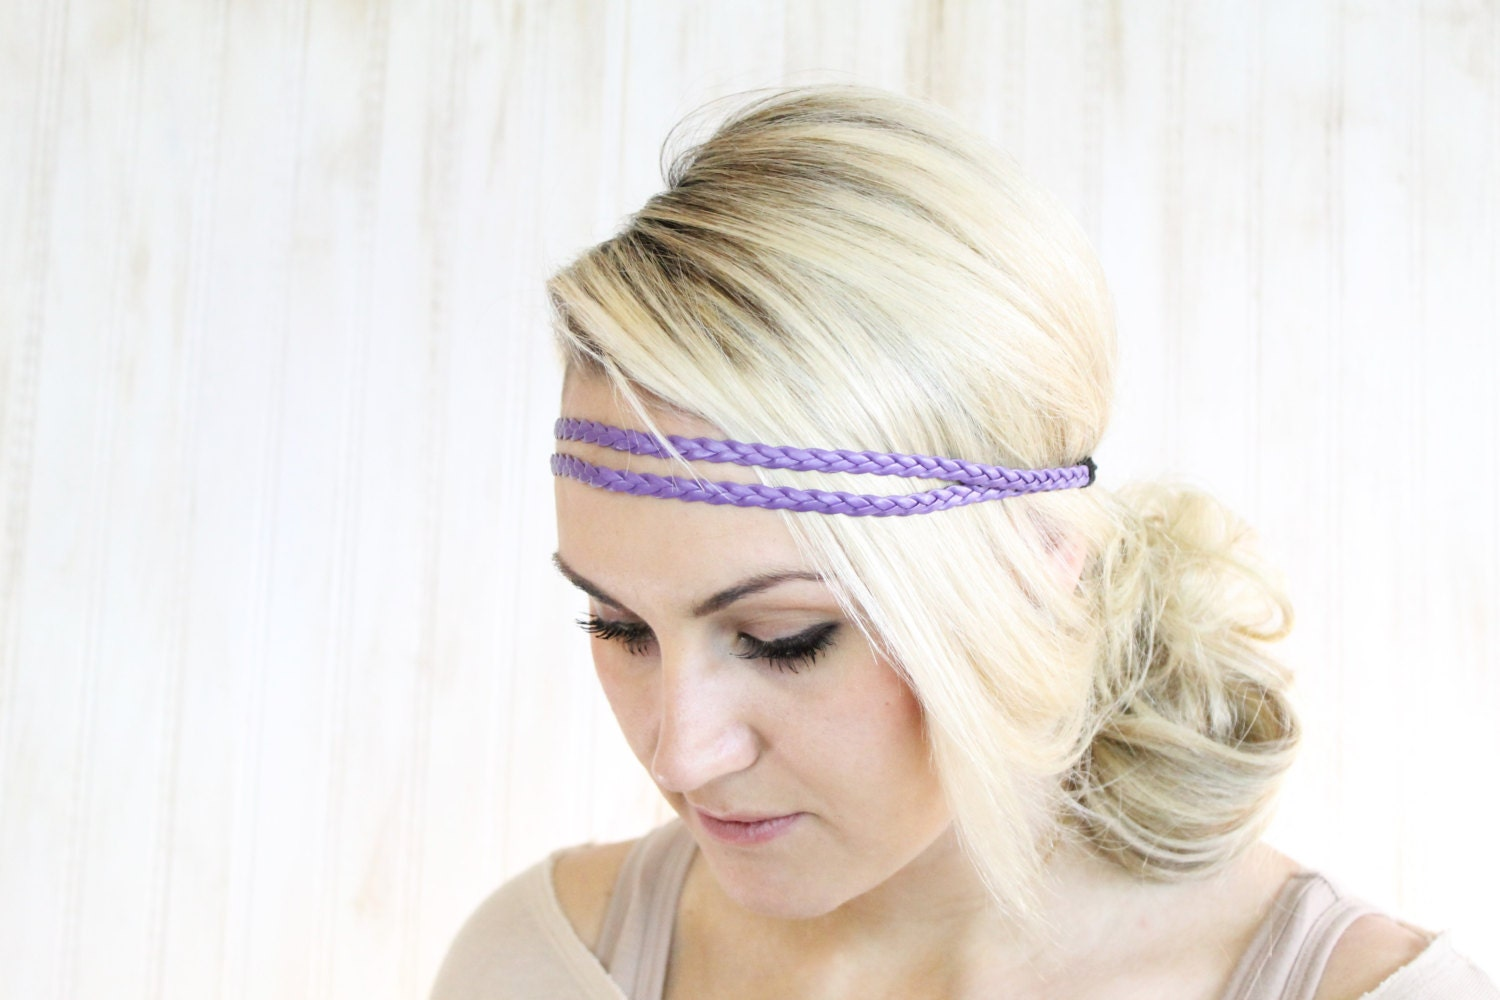 Check out these gorgeous headband braids for sale at DHgate Canada online stores, and buy headband braids for sale at ridiculously affordable prices. Whether you're looking for a crown headband barrettes or baby knit wool headbands, we've got you covered with a variety of styles.